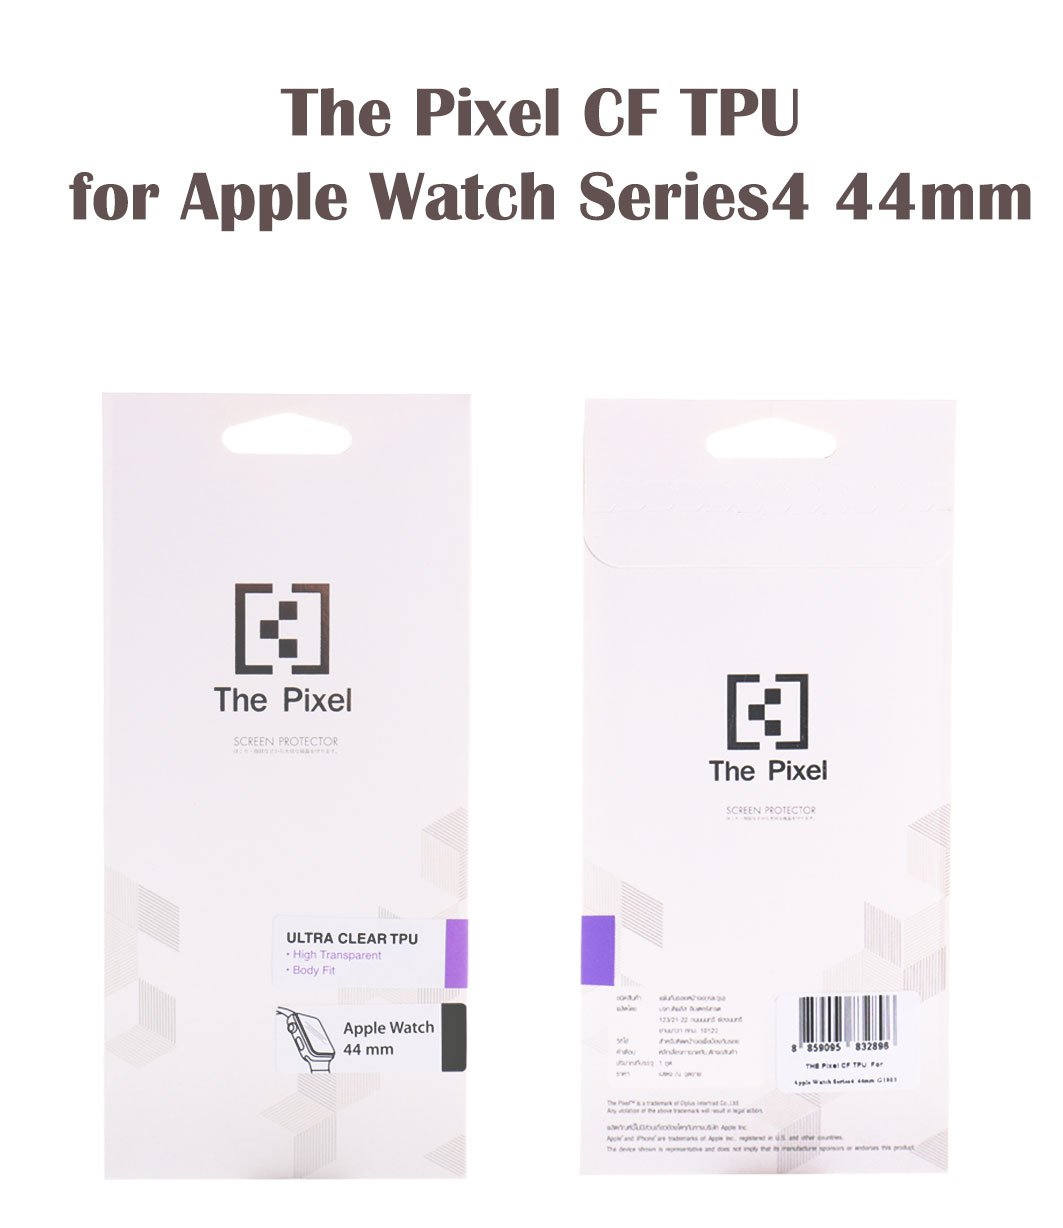 Film The Pixel CF TPU for Apple Watch Series4 44mm